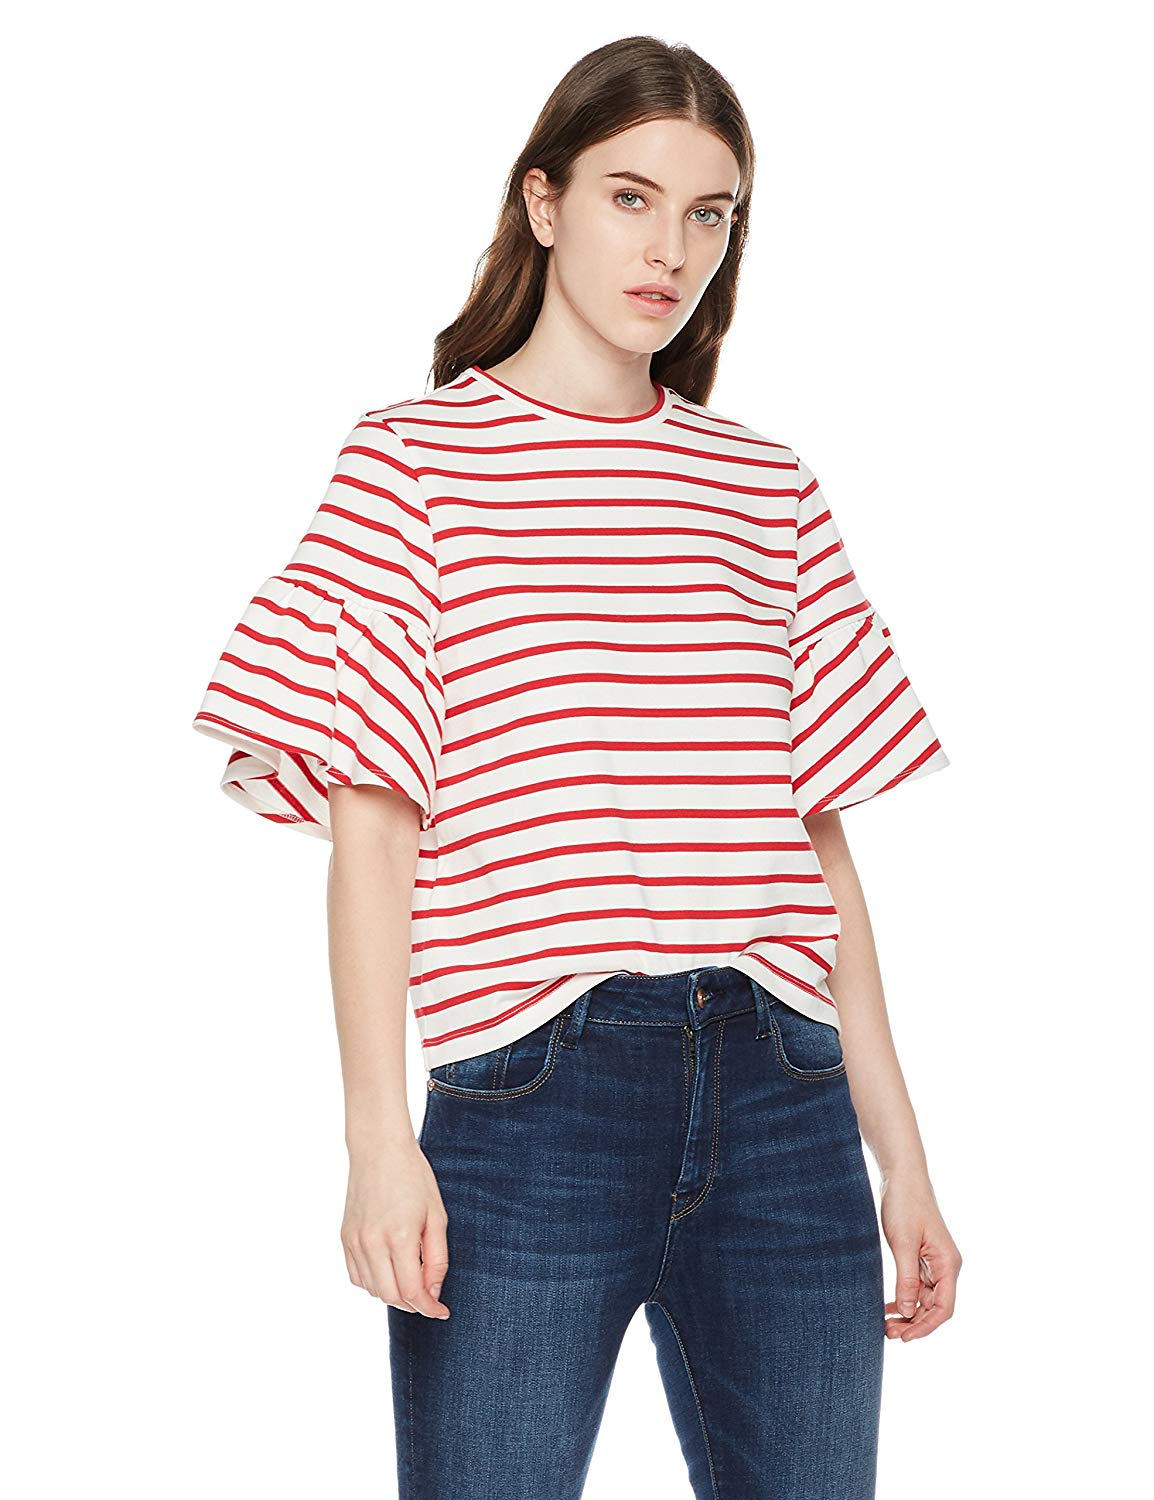 89cd78e7 True Angel Round Neck Ruffle Flare Short Sleeves Allover Red/White Stripes  Top